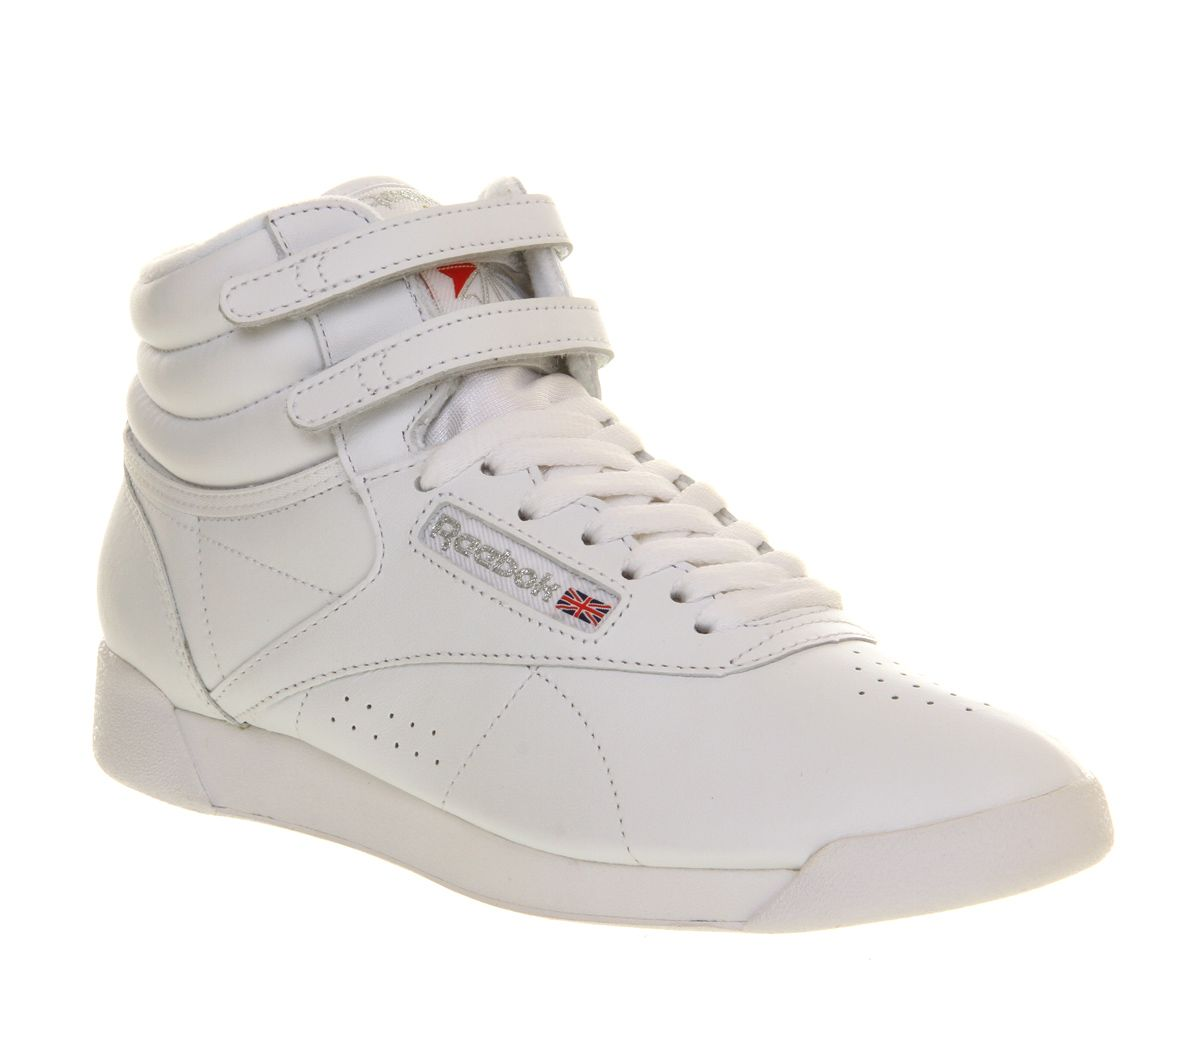 Reebok Freestyle Hi White Silver Hers trainers